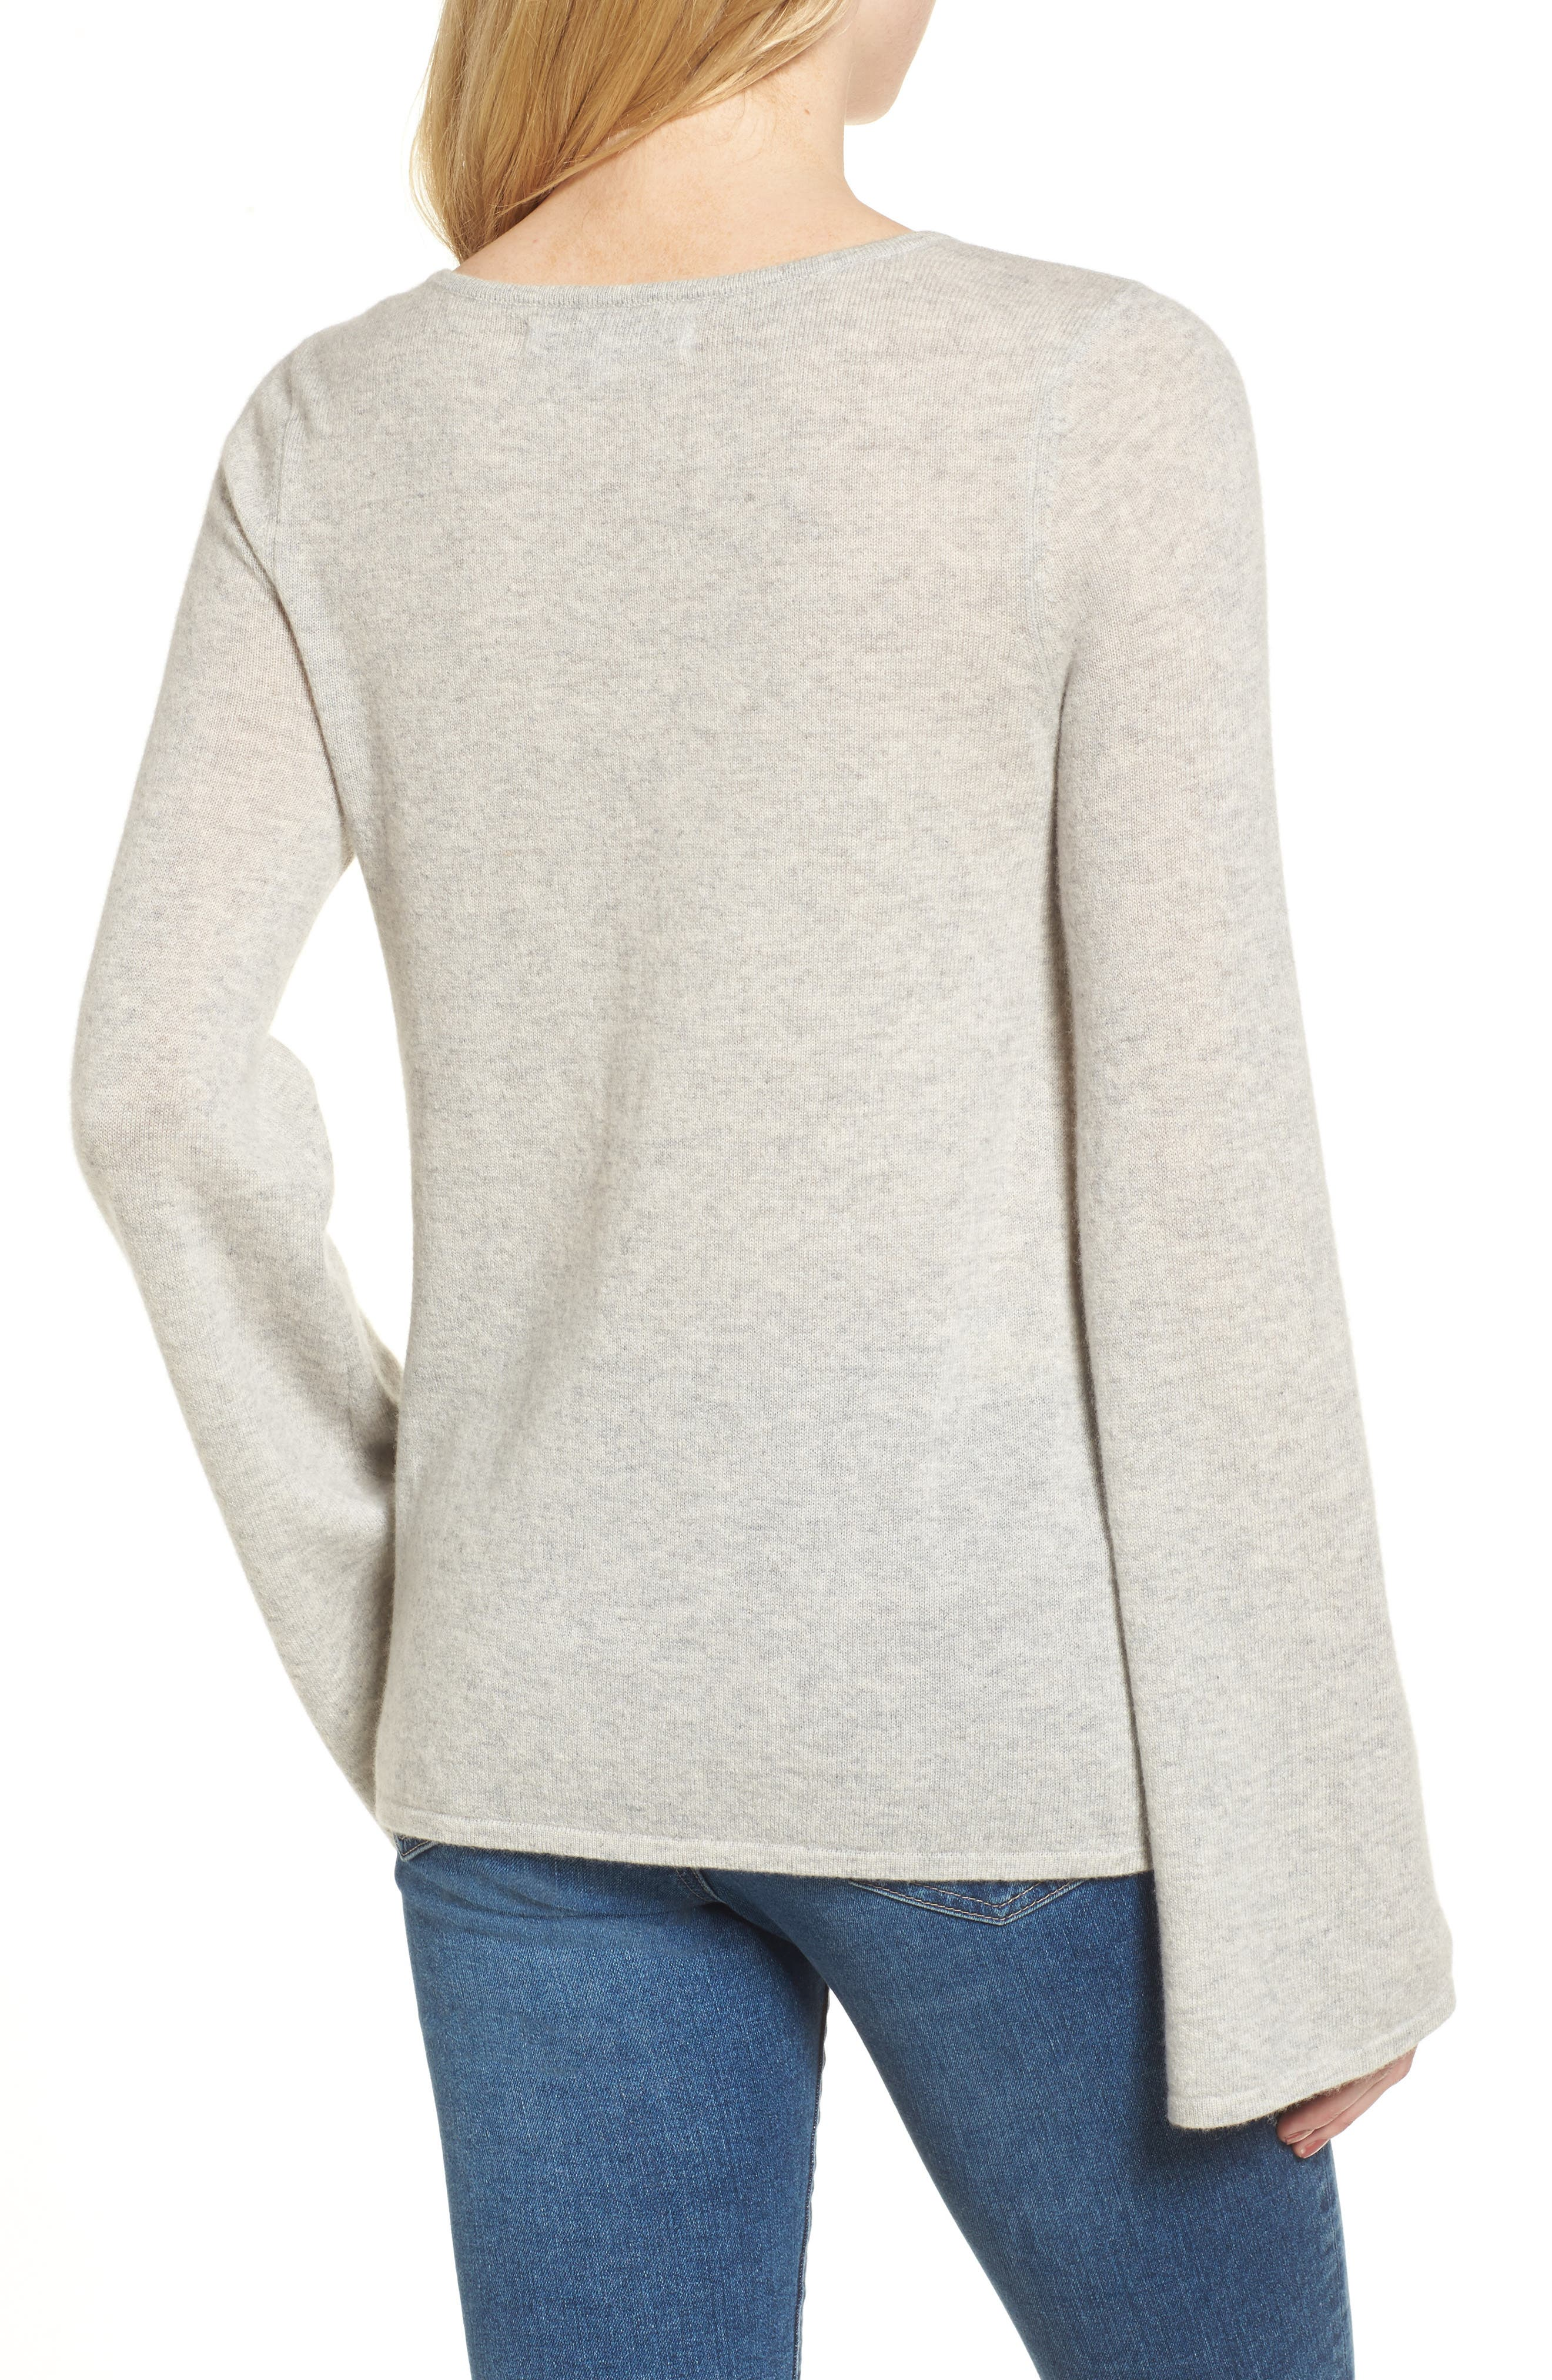 Marylee Cashmere Top,                             Alternate thumbnail 2, color,                             037